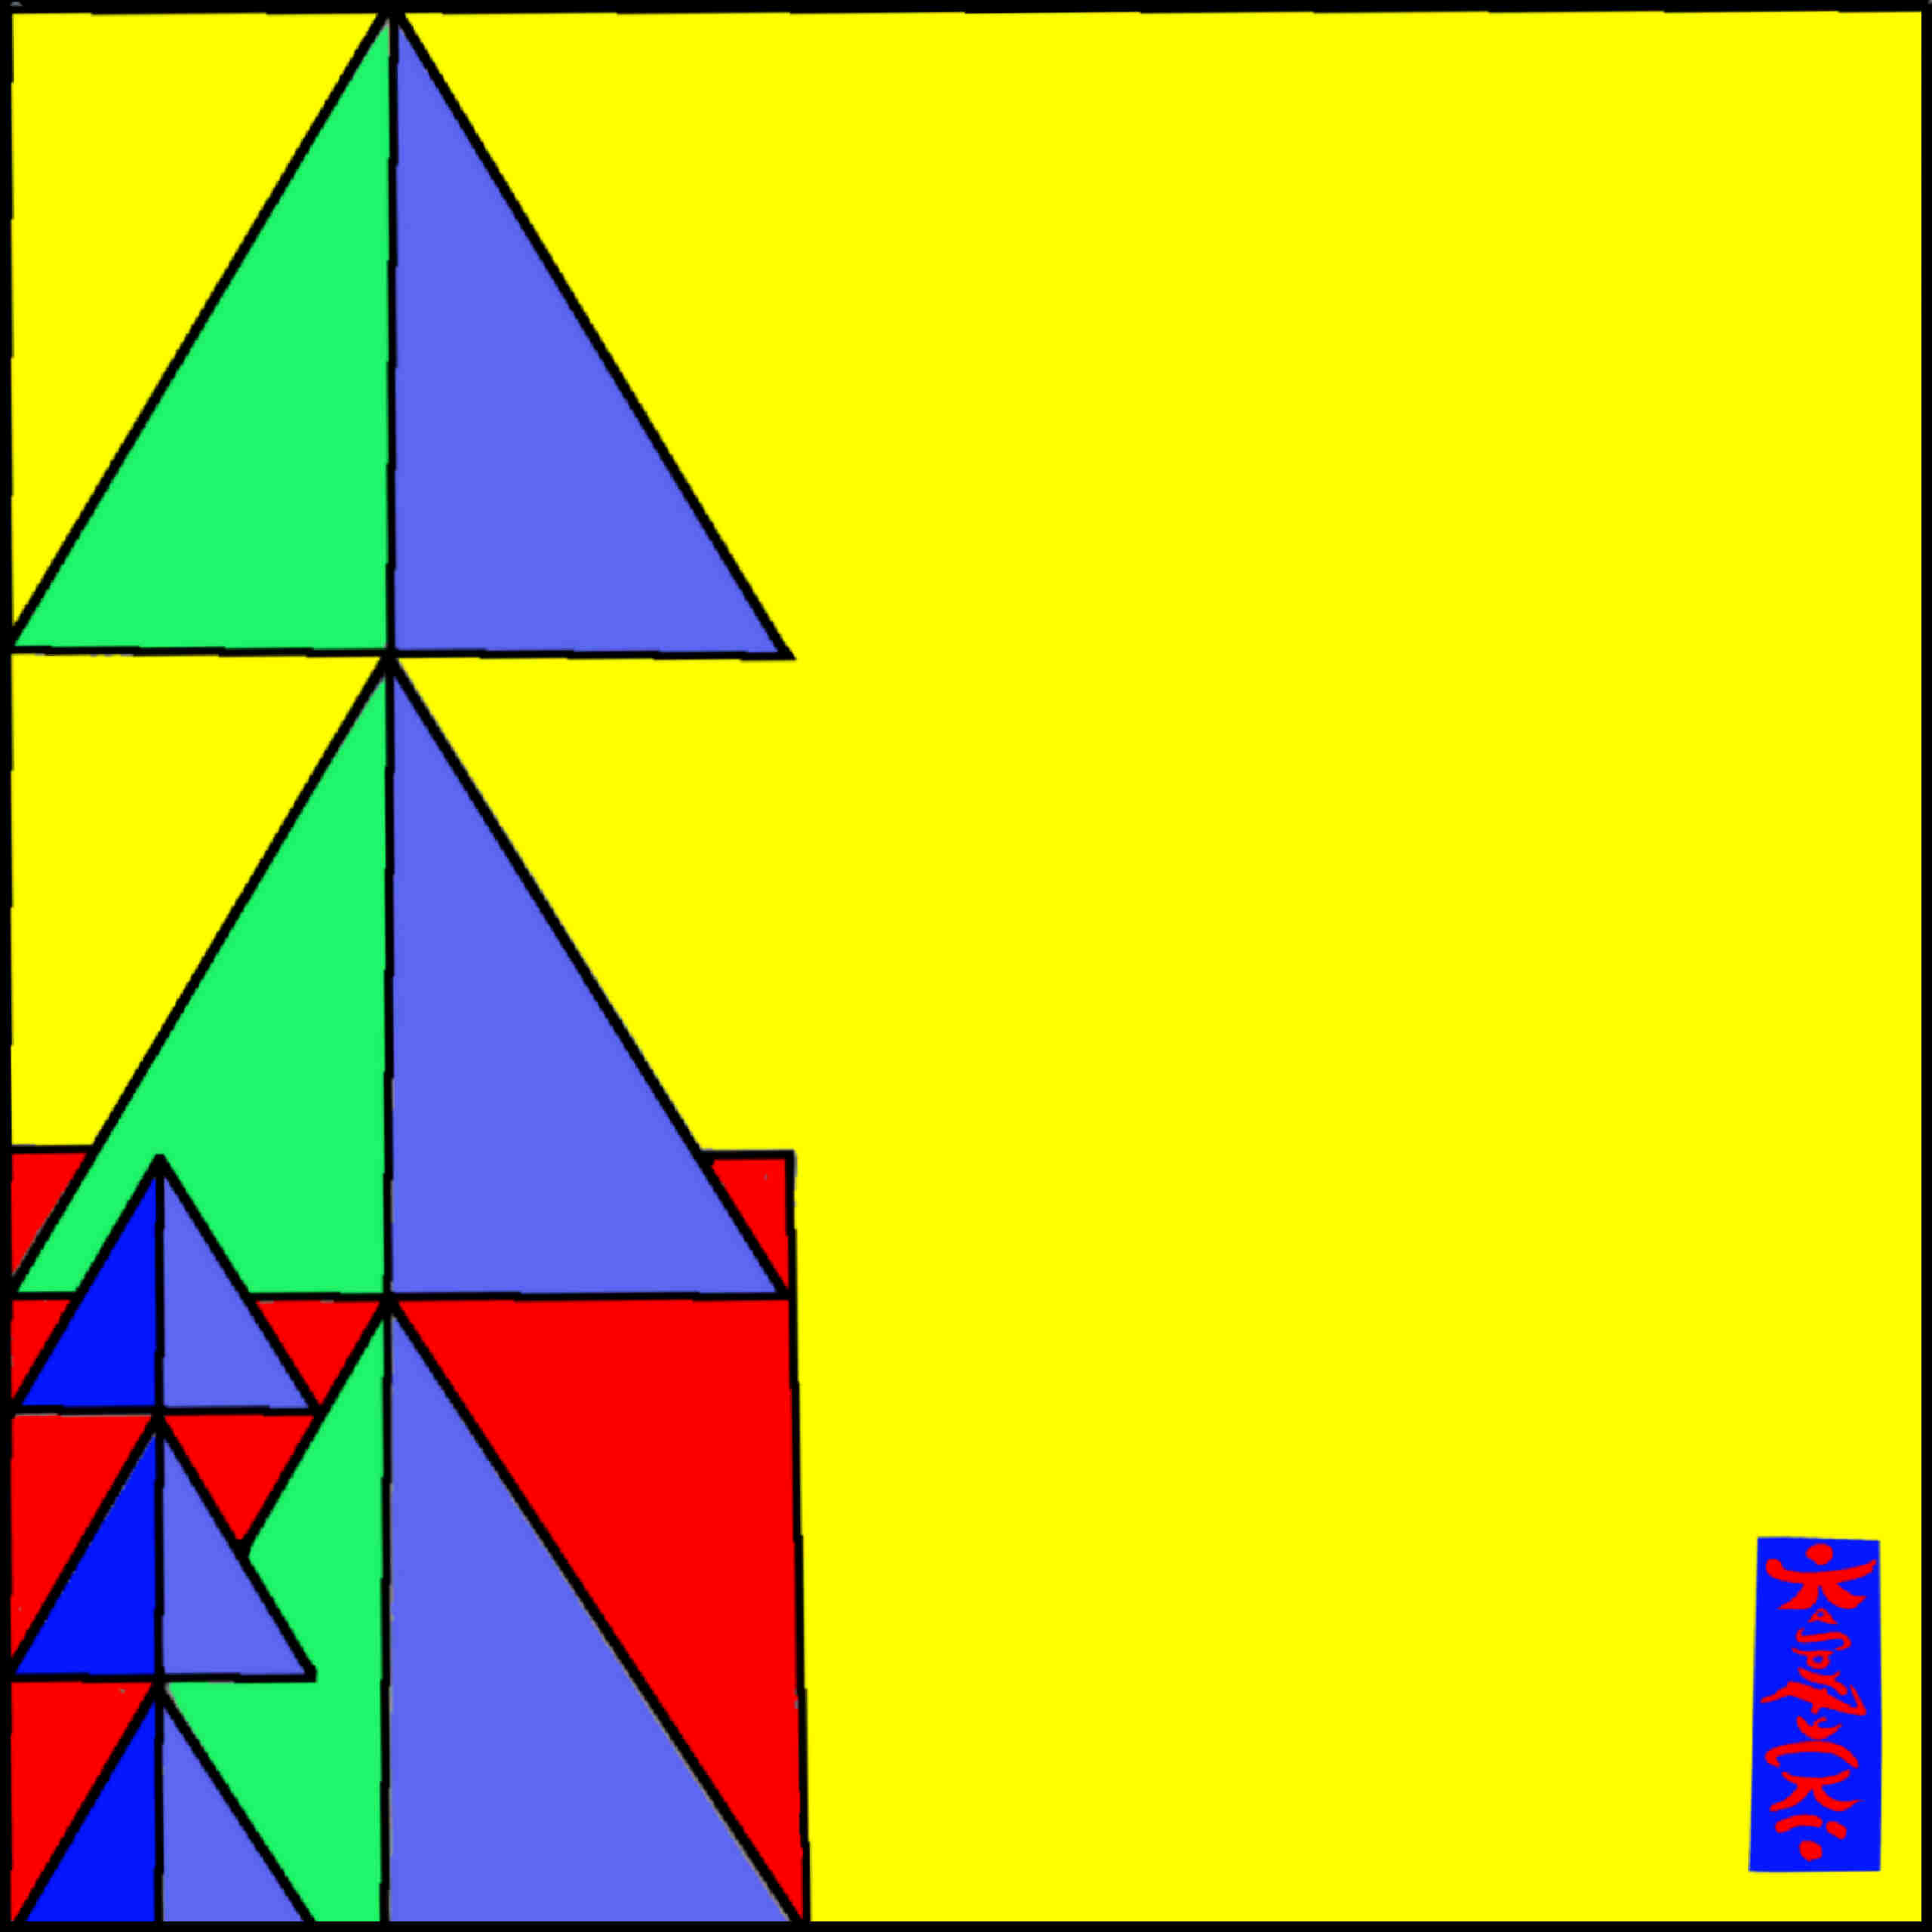 Rather Than Having The Edge Of The 3 New Tetrahedrons Equal The Cube's  Edge, Geometry Also Favors The Fractal With The Tetrahedron's Height Equal